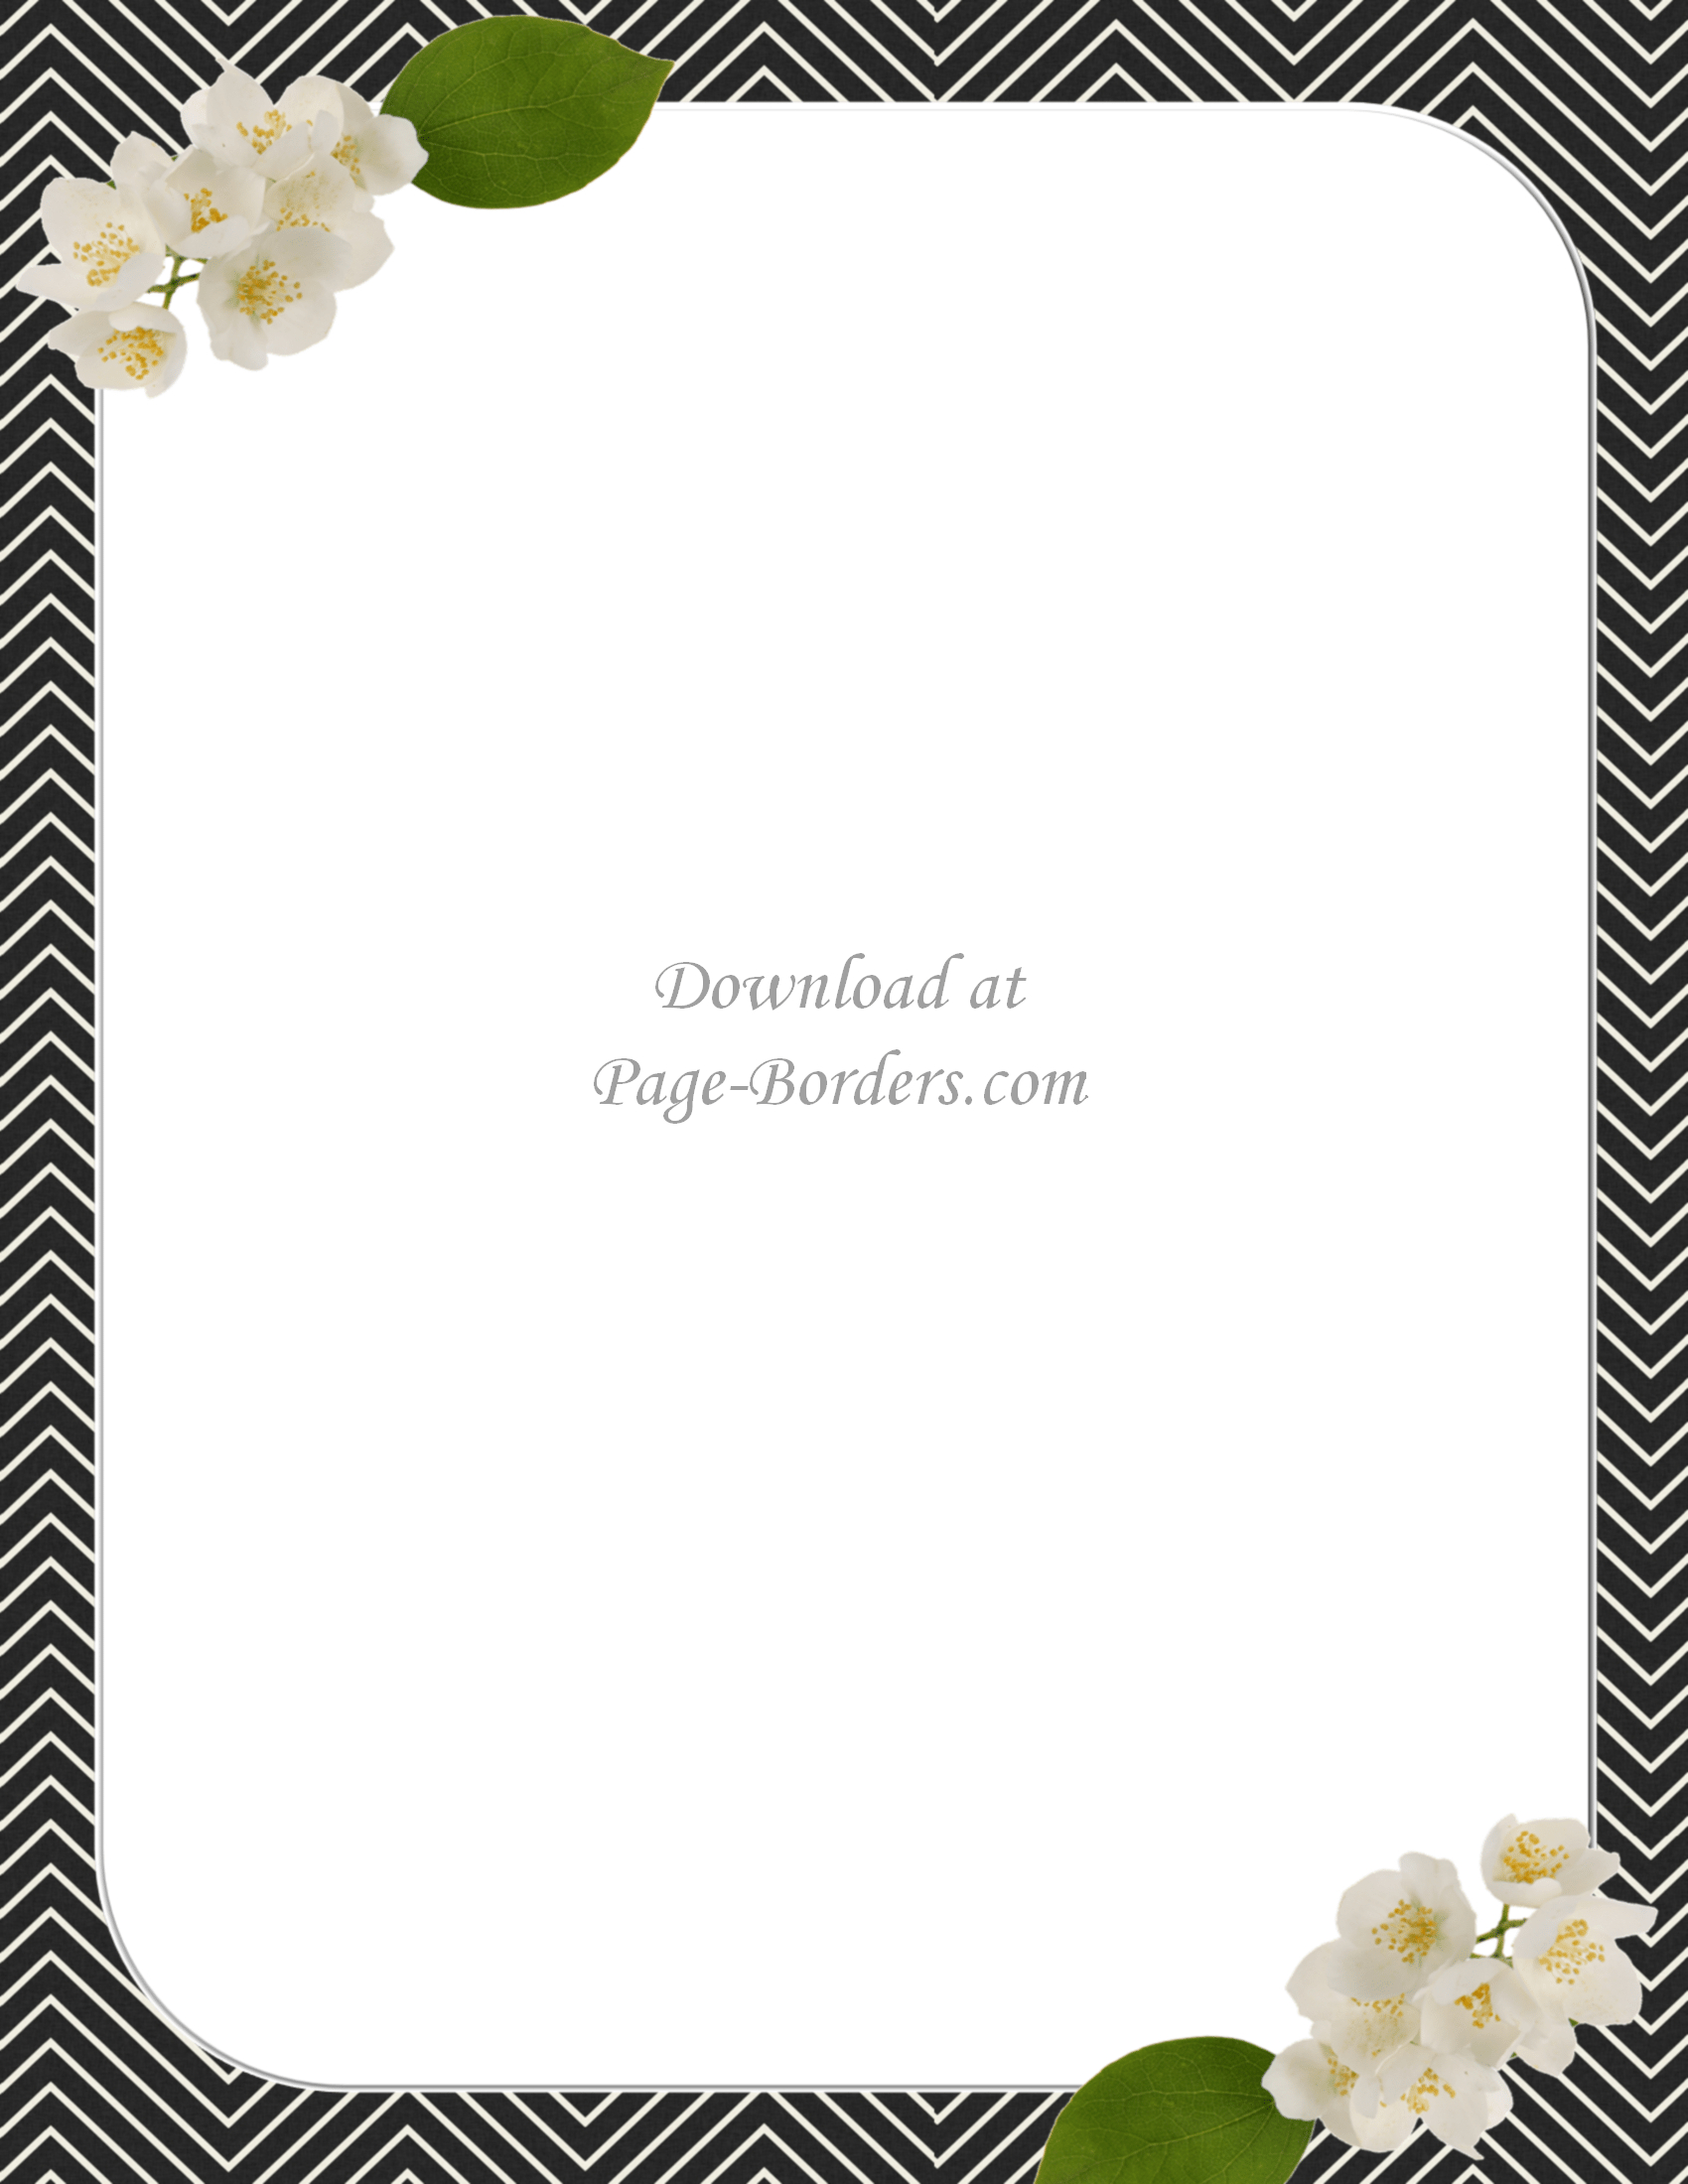 Free Flower Border Template | Personal & Commercial Use - Free Printable Borders For Cards